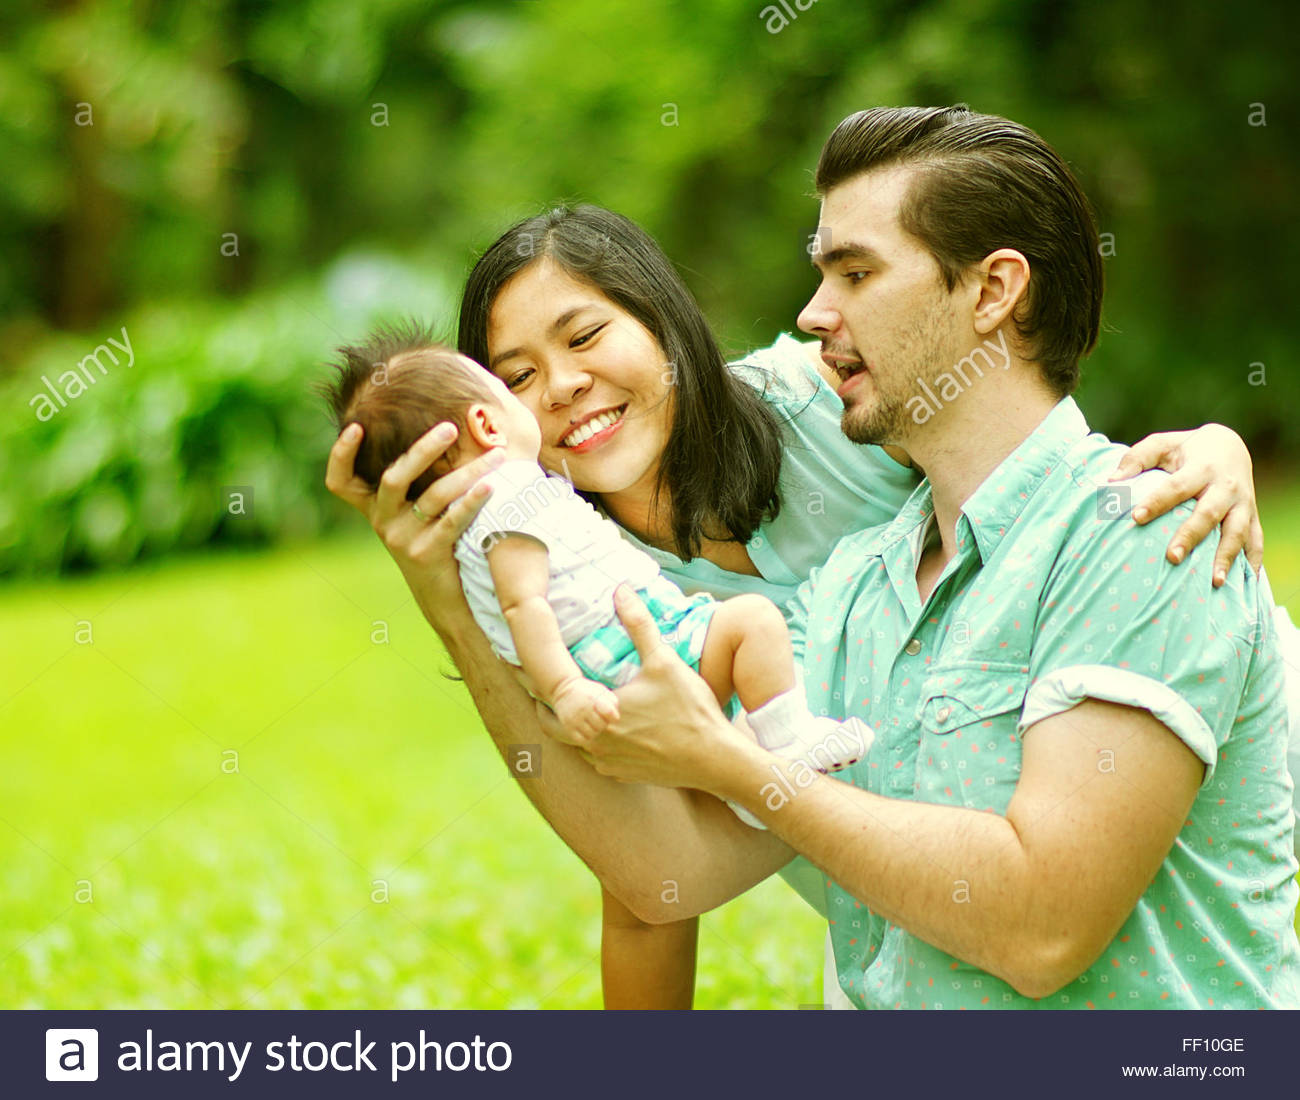 Happy Mixed Race Family Playing with New Born Baby at Park - Stock Image